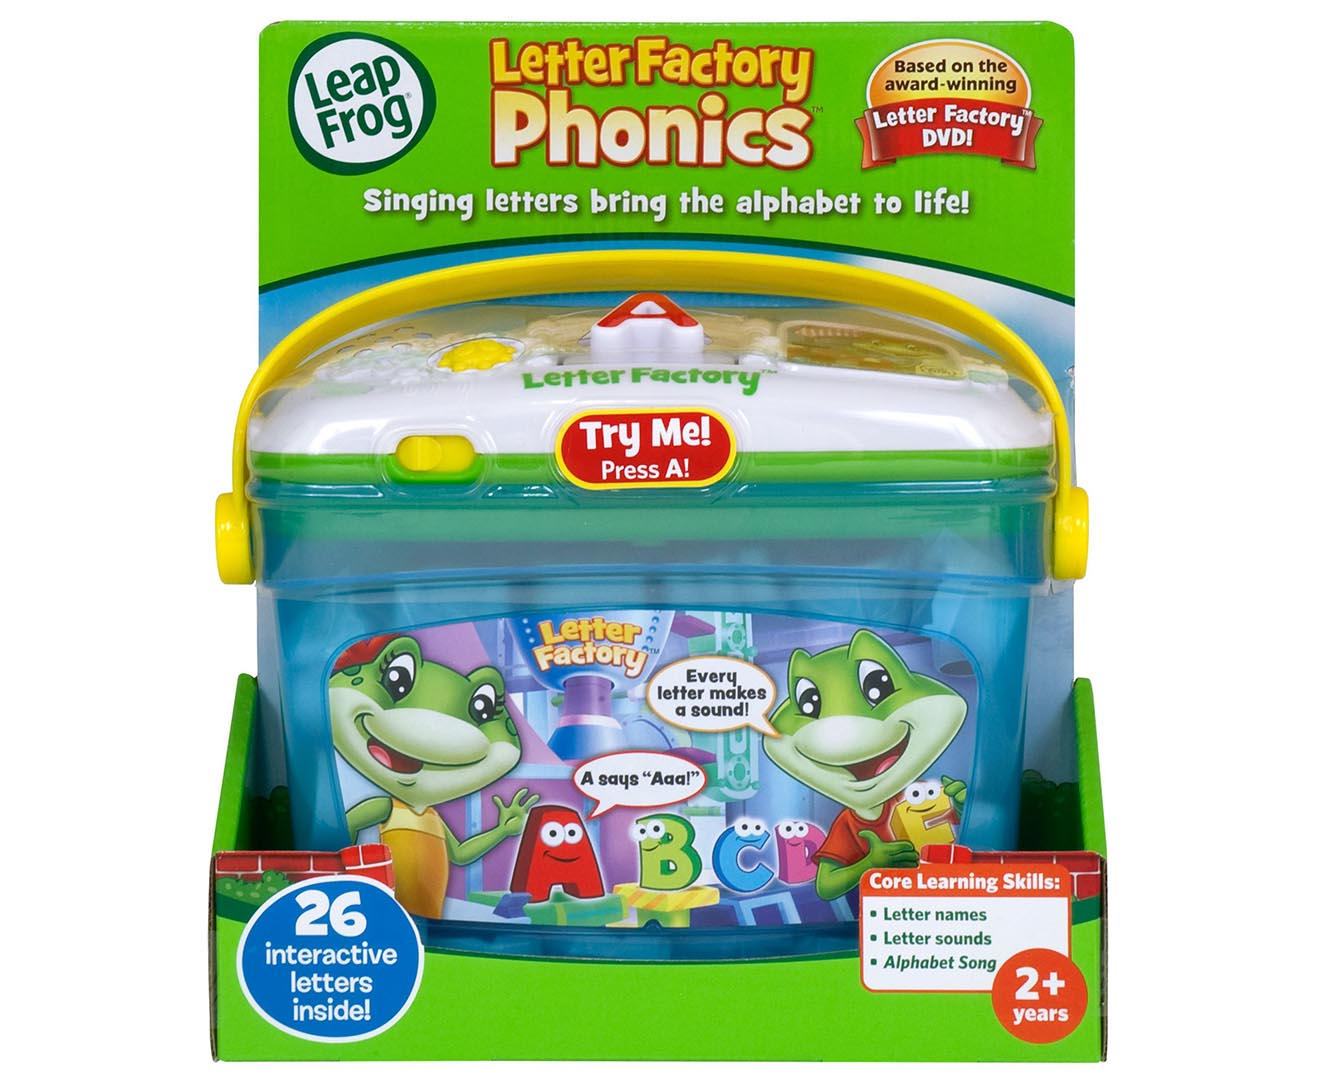 leapfrog letter factory phonics catchoftheday au leapfrog letter factory phonics 22720